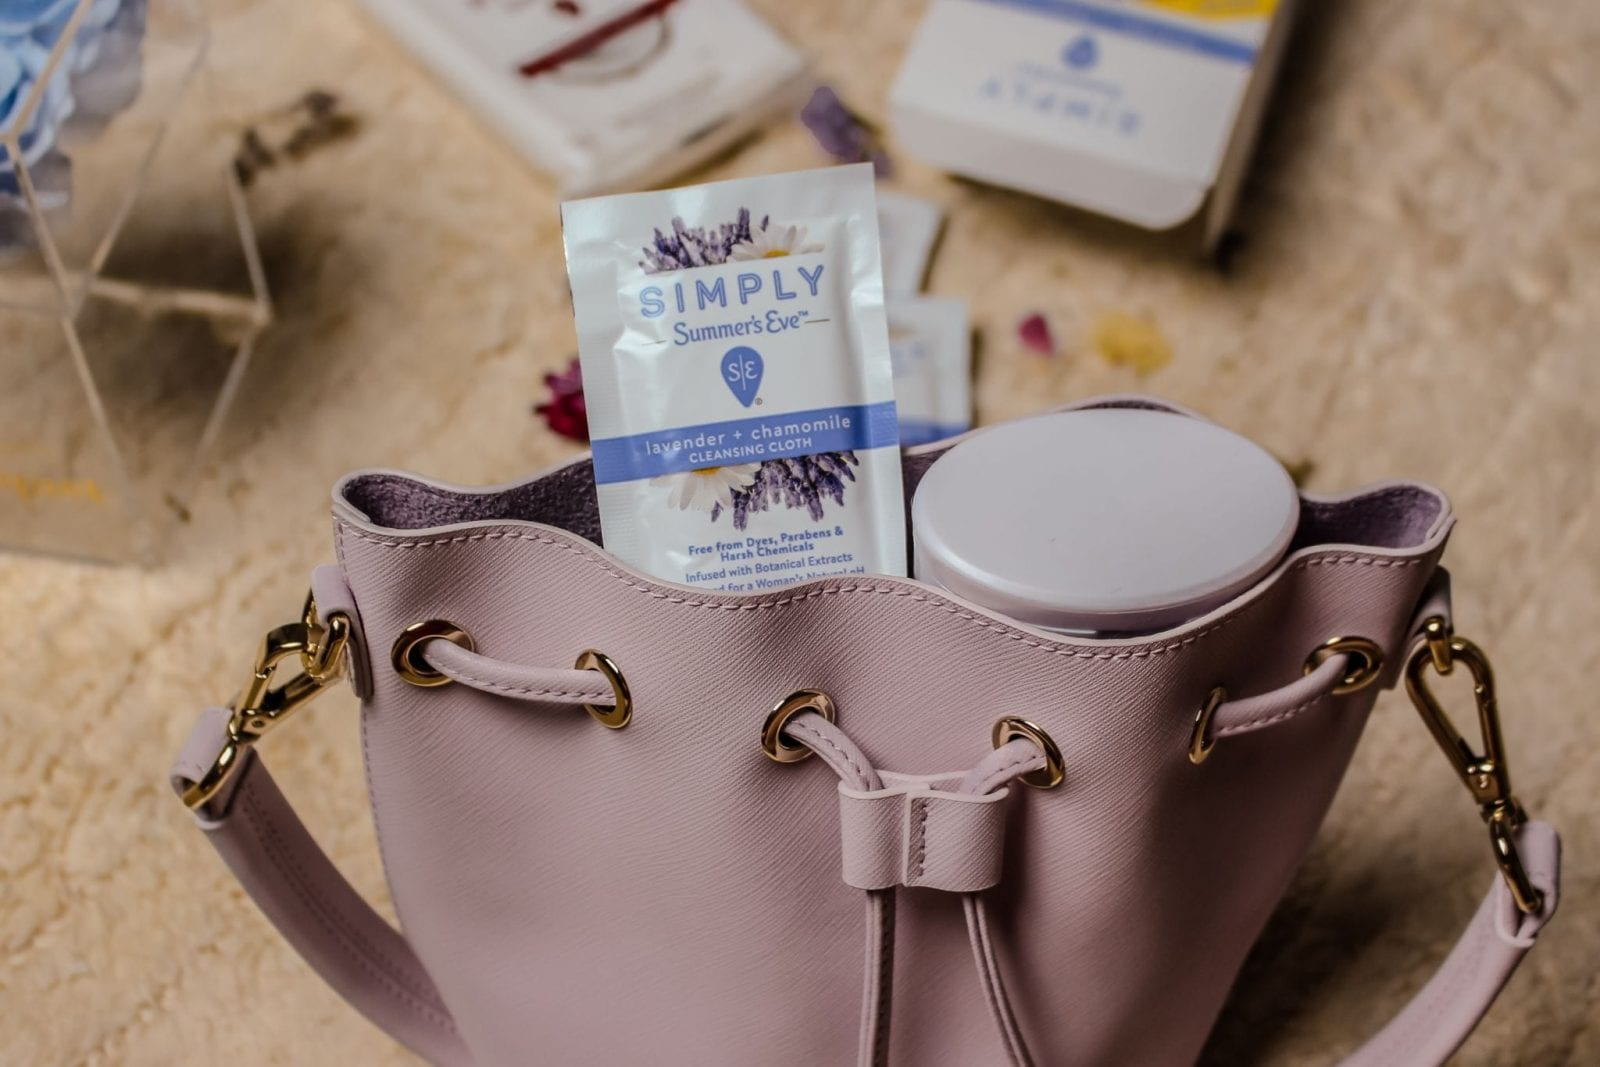 This is a close up shot of a lilac bucket bag, with Summer's Eve wipes sticking out.